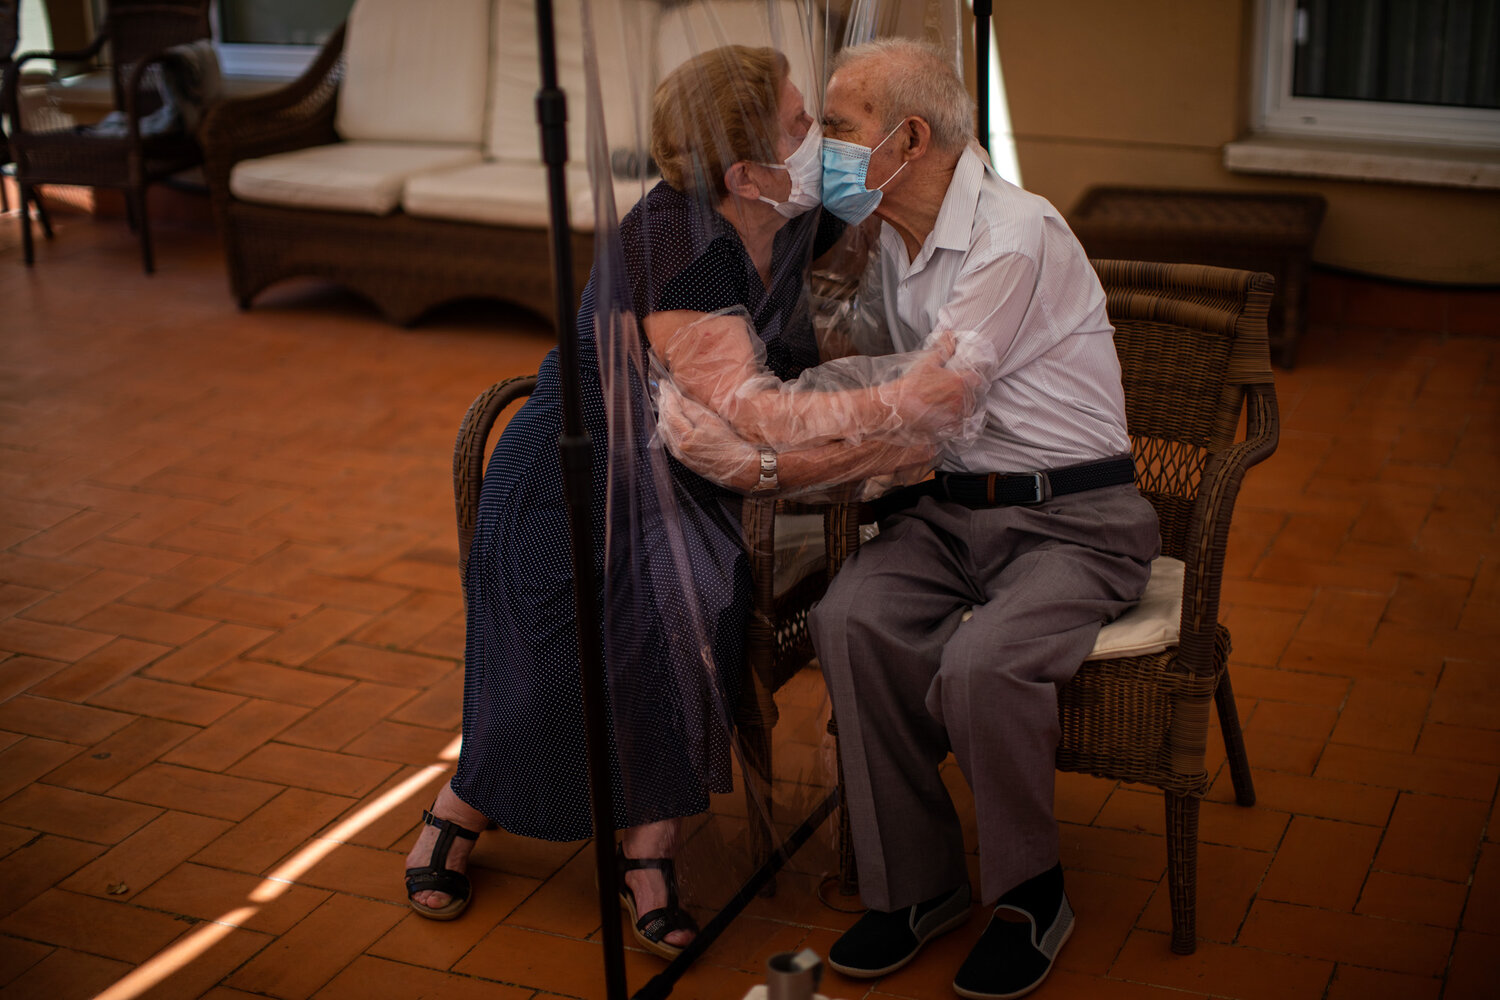 Agustina Canamero, 81, and Pascual Perez, 84, hug and kiss through a plastic film screen to avoid contracting the coronavirus at a nursing home in Barcelona, Spain, on June 22, 2020. (AP Photo/Emilio Morenatti)